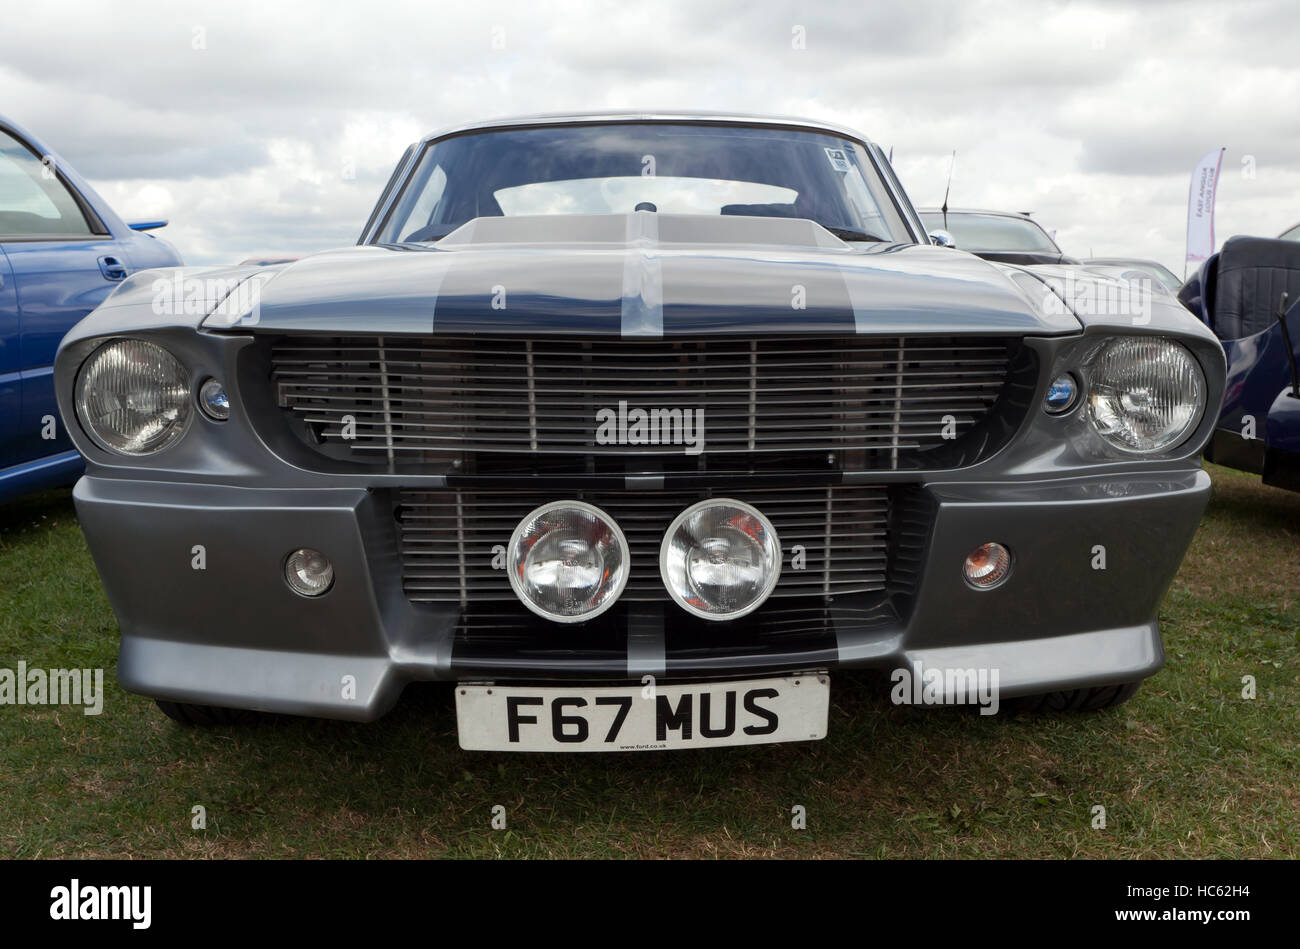 Front view of a Ford GT500 Shelby Mustang on display in a  Car Club Zone of the 2016 Silverstone Classic - Stock Image